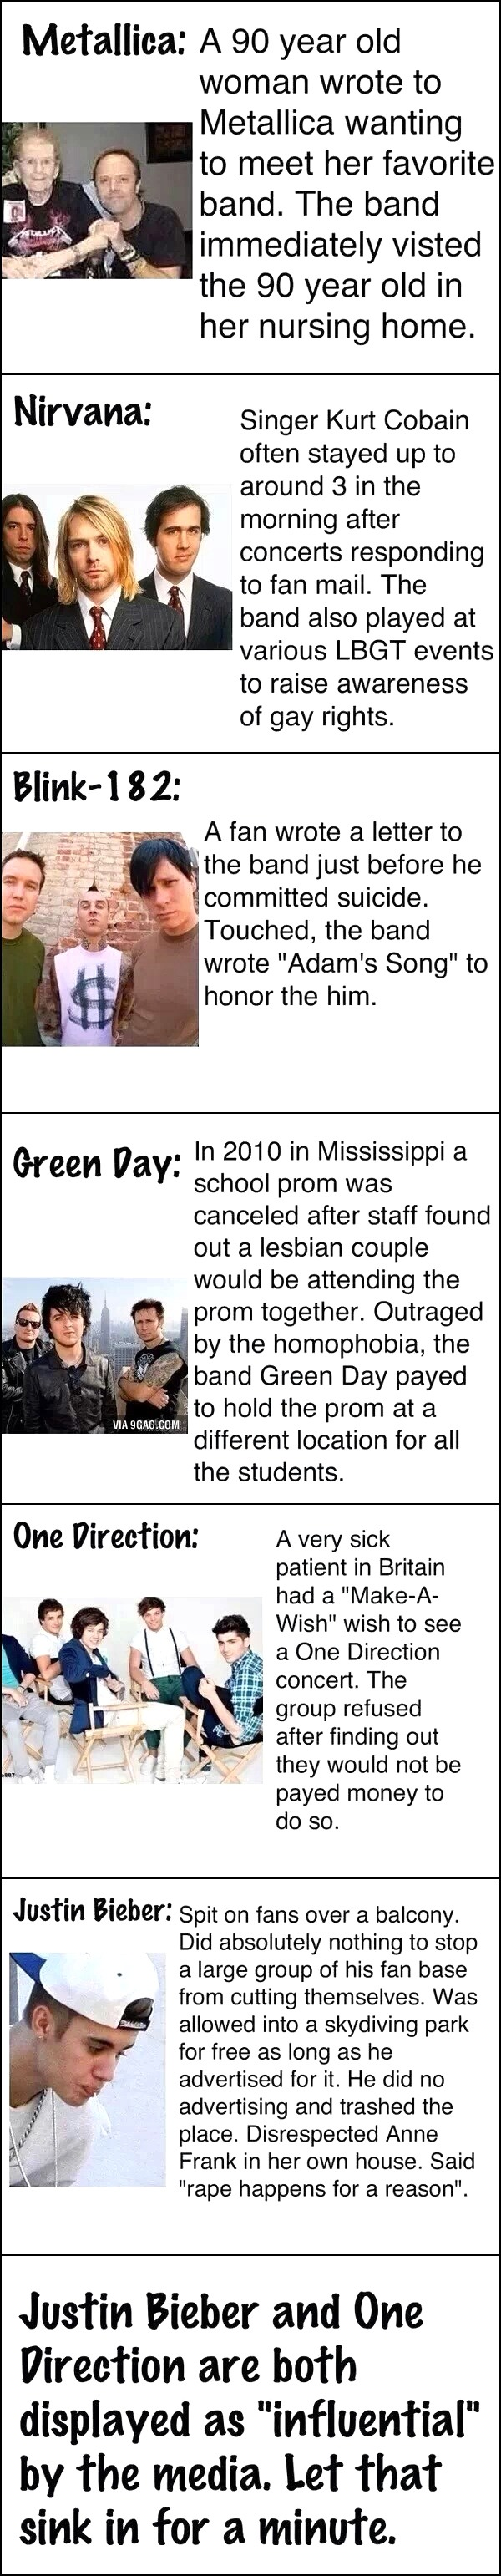 all bands are not created equal, one direction, justin bieber, green day, metallica, blink-182, nirvana